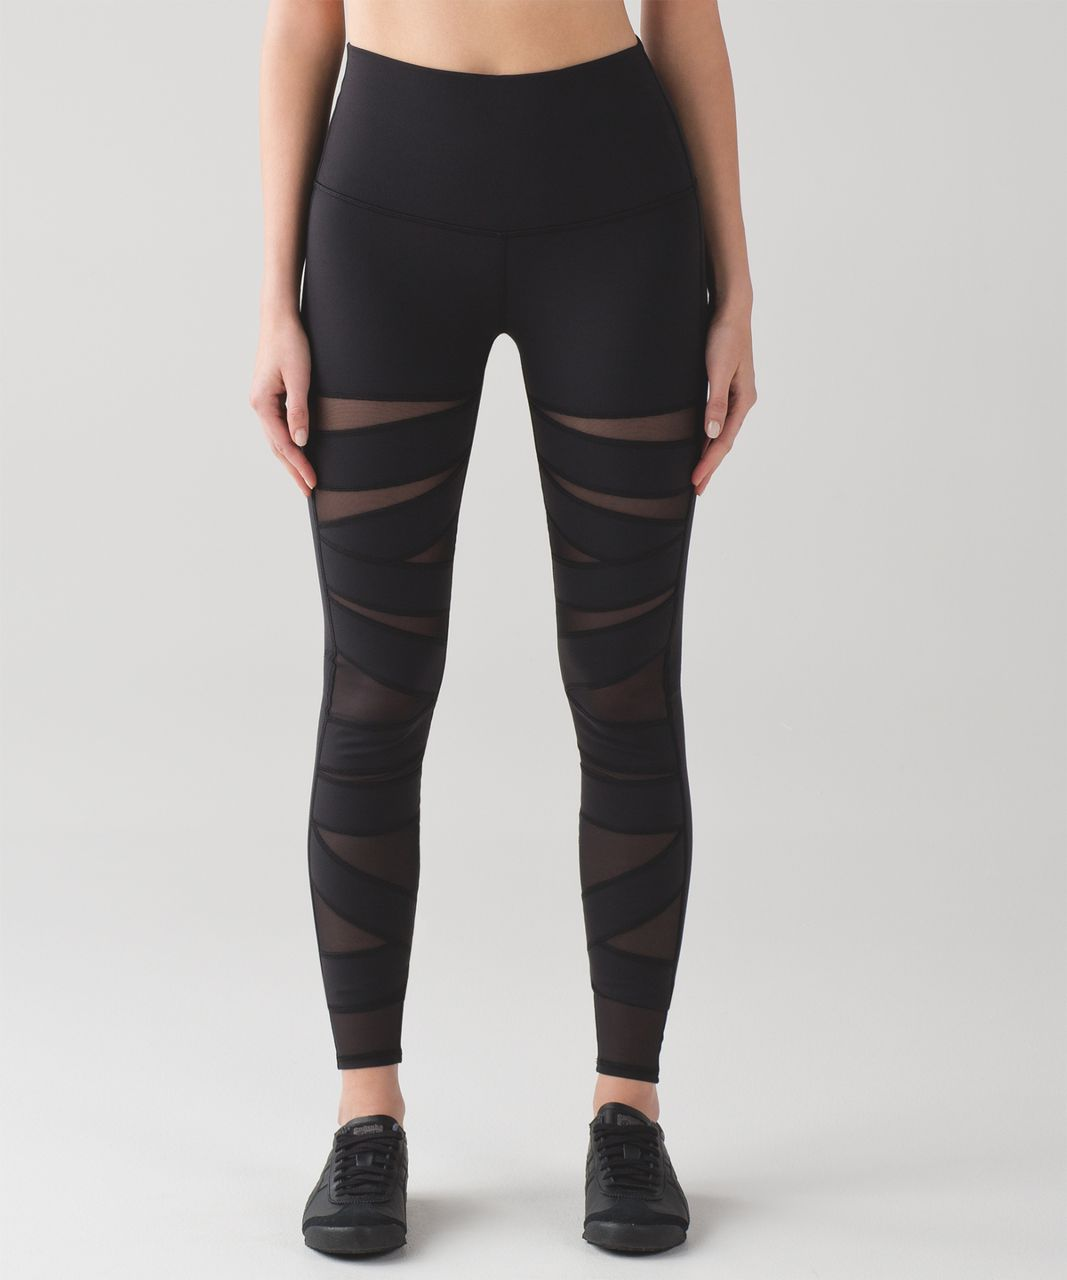 12188b3dd0546 Lululemon Wunder Under Pant (Hi-Rise) (Tech Mesh) - Black - lulu fanatics